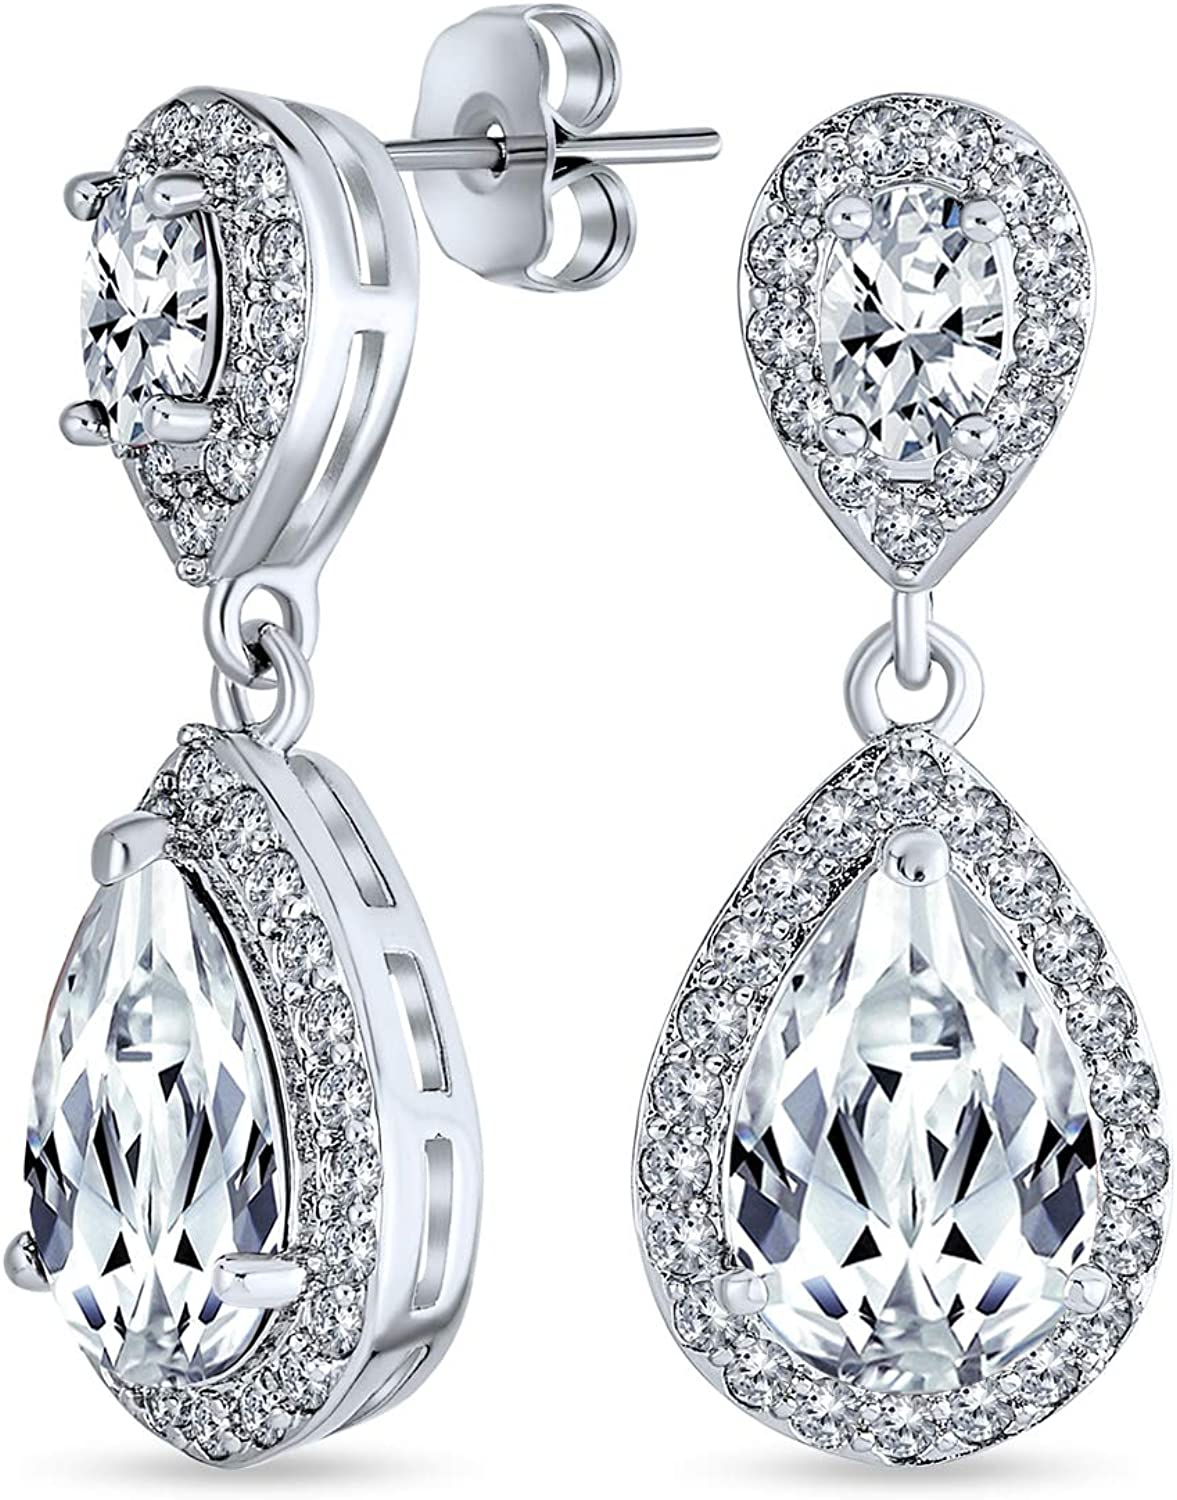 Bridal Fashion Pave AAA CZ Halo Pear Shaped Teardrop Dangle Statement Earrings For Women More Simulated Gemstone Colors